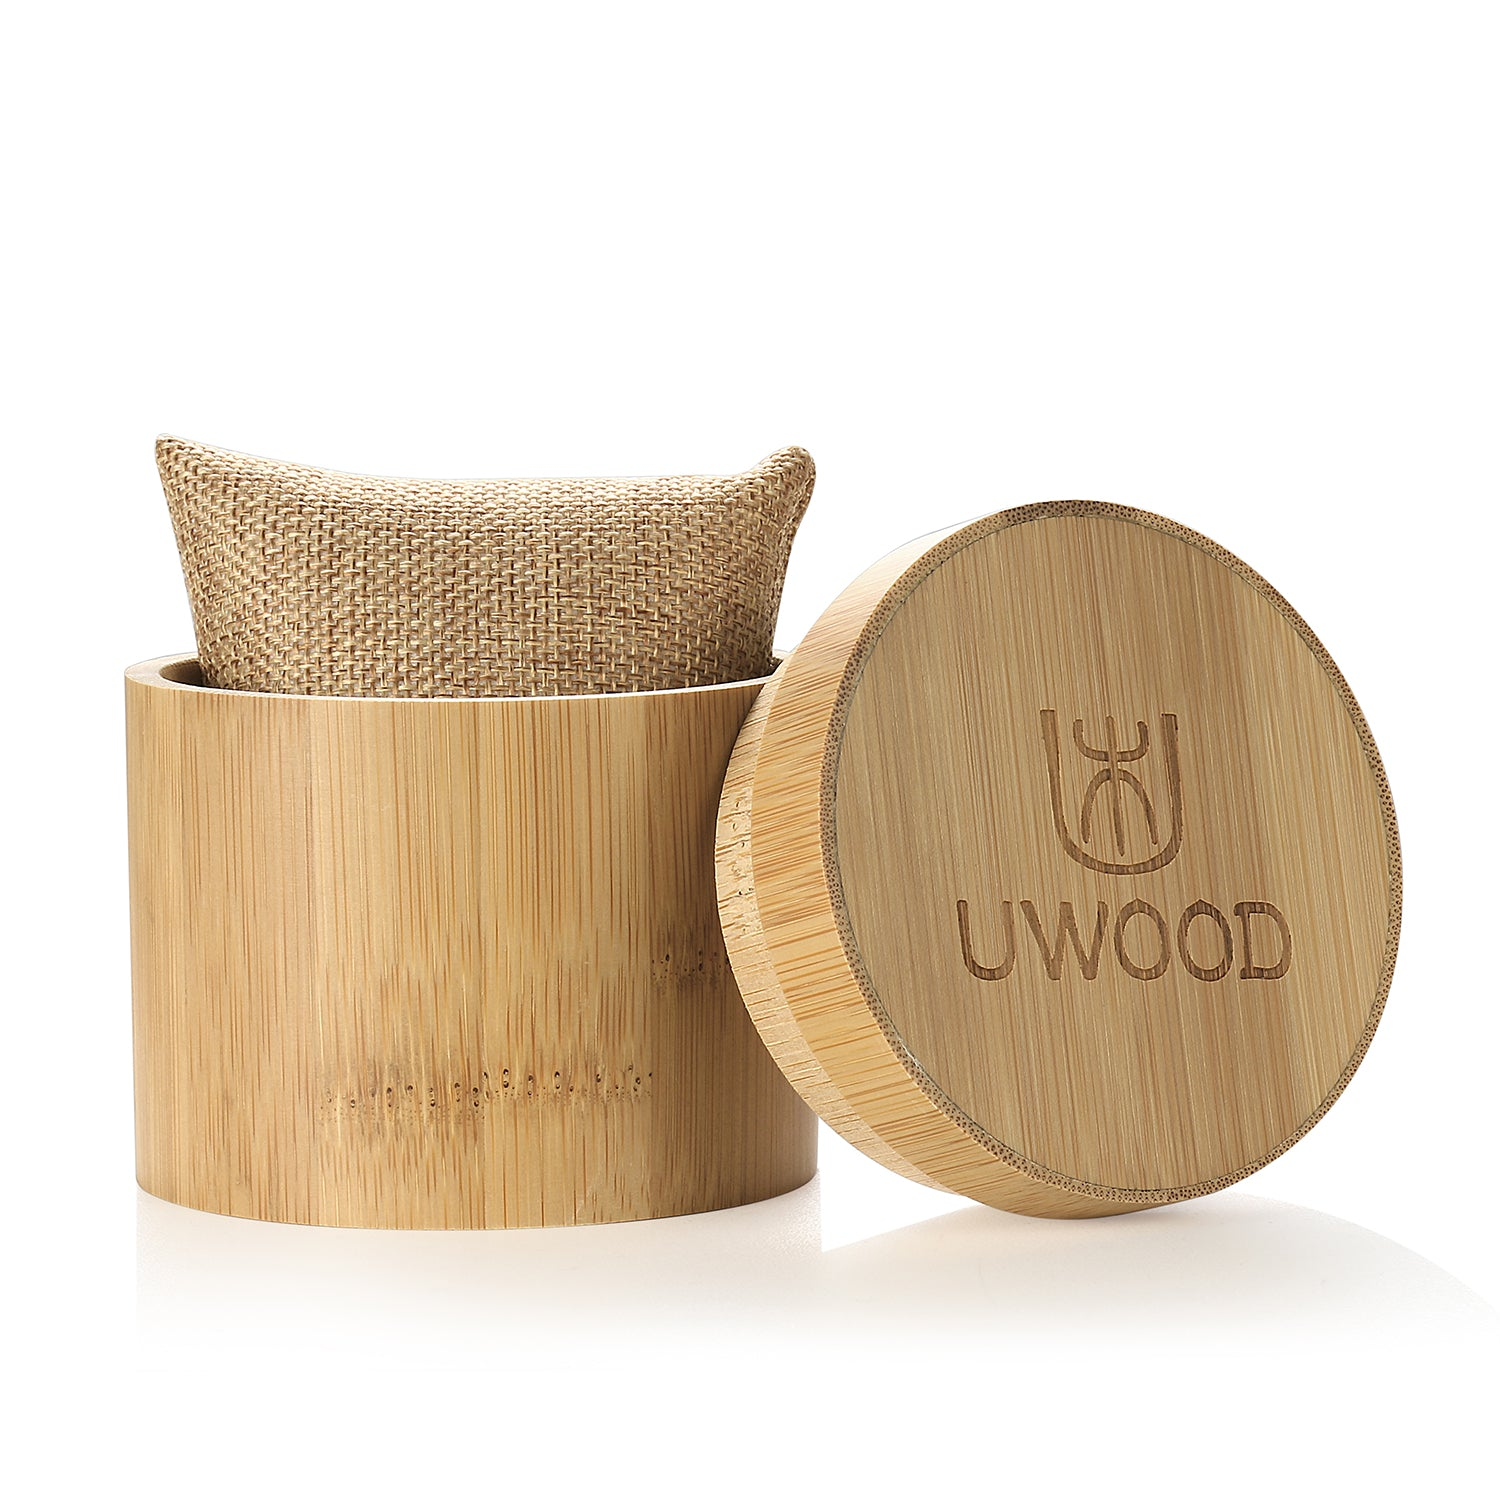 UWOOD Bamboo Wood Watch Gift Box Watch Case